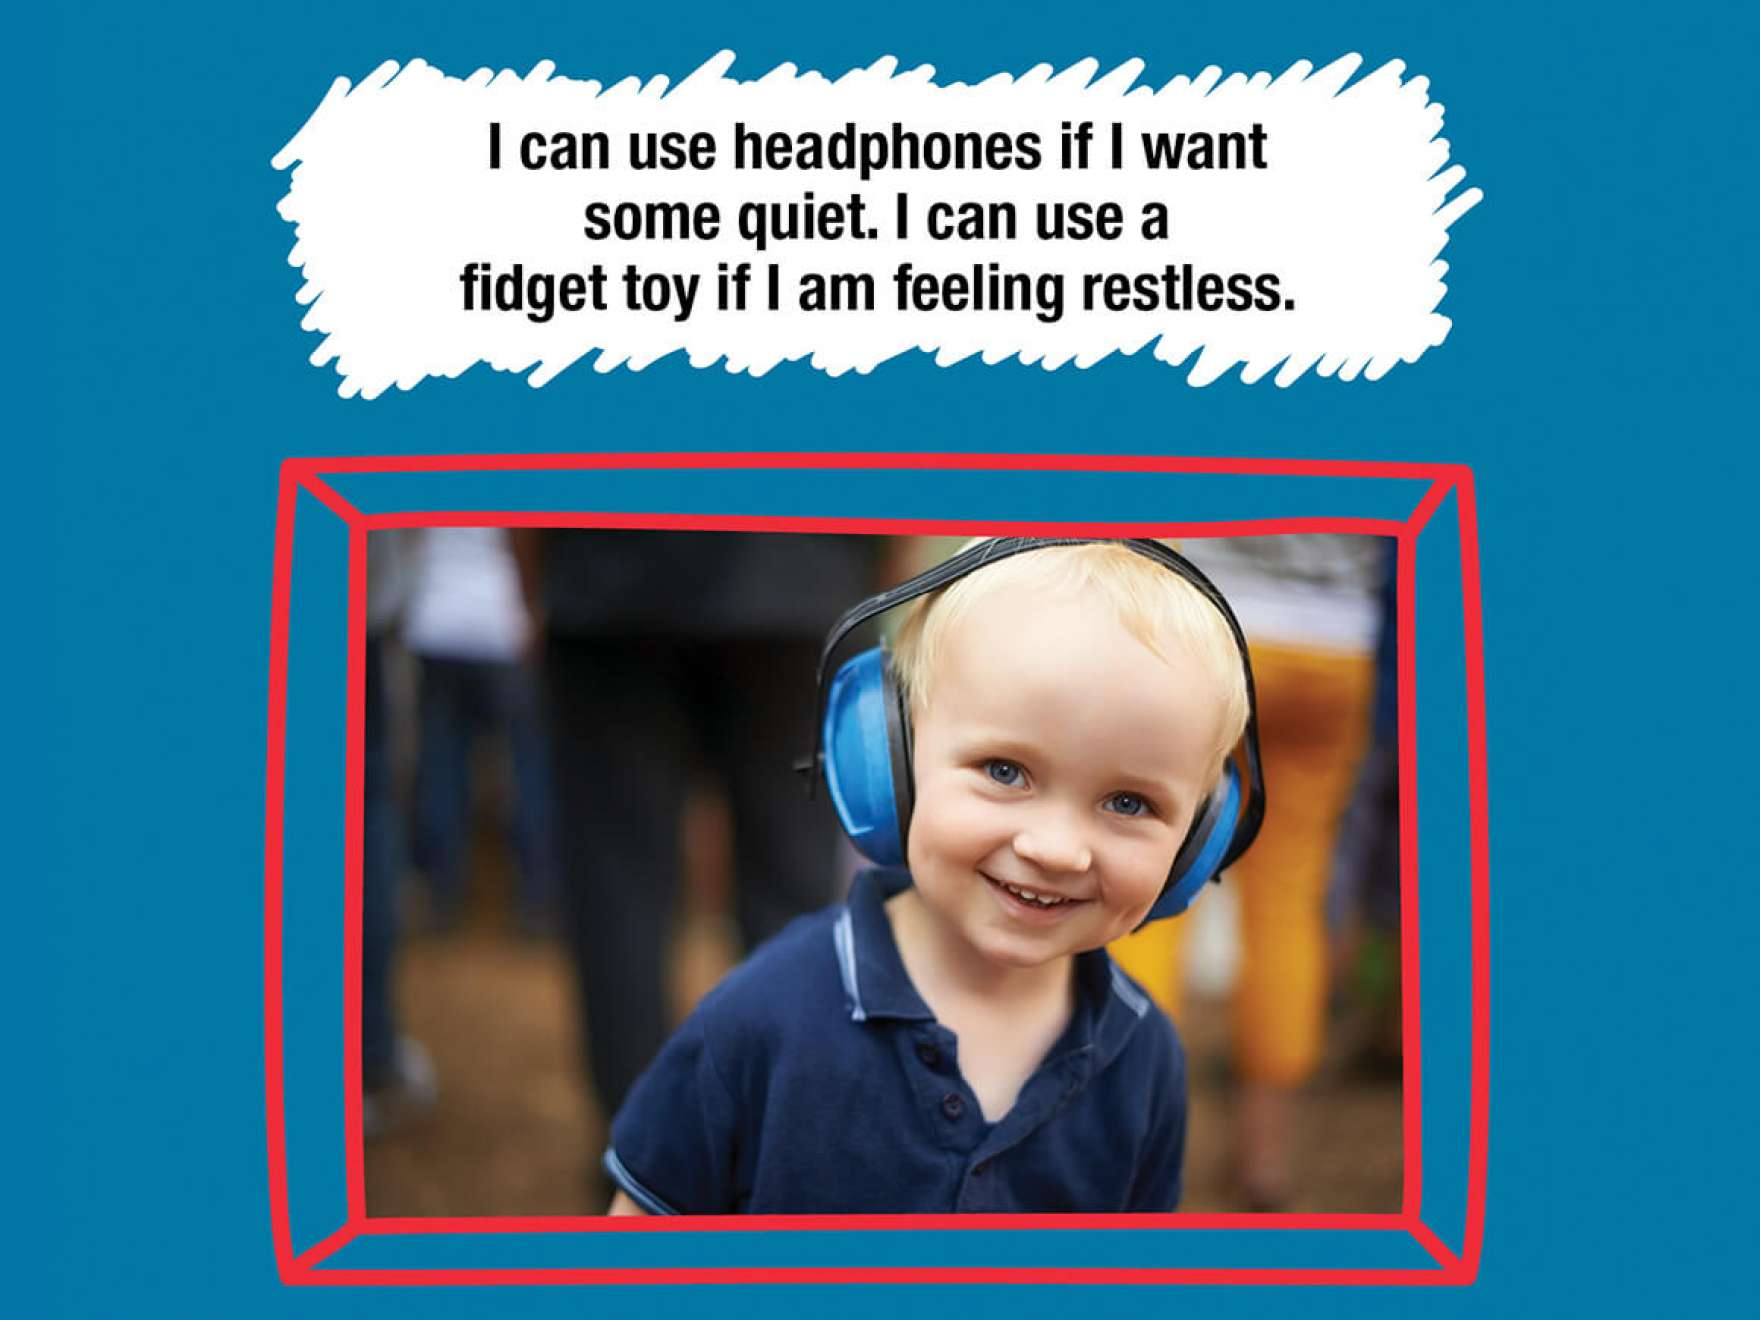 I can use headphones if I want